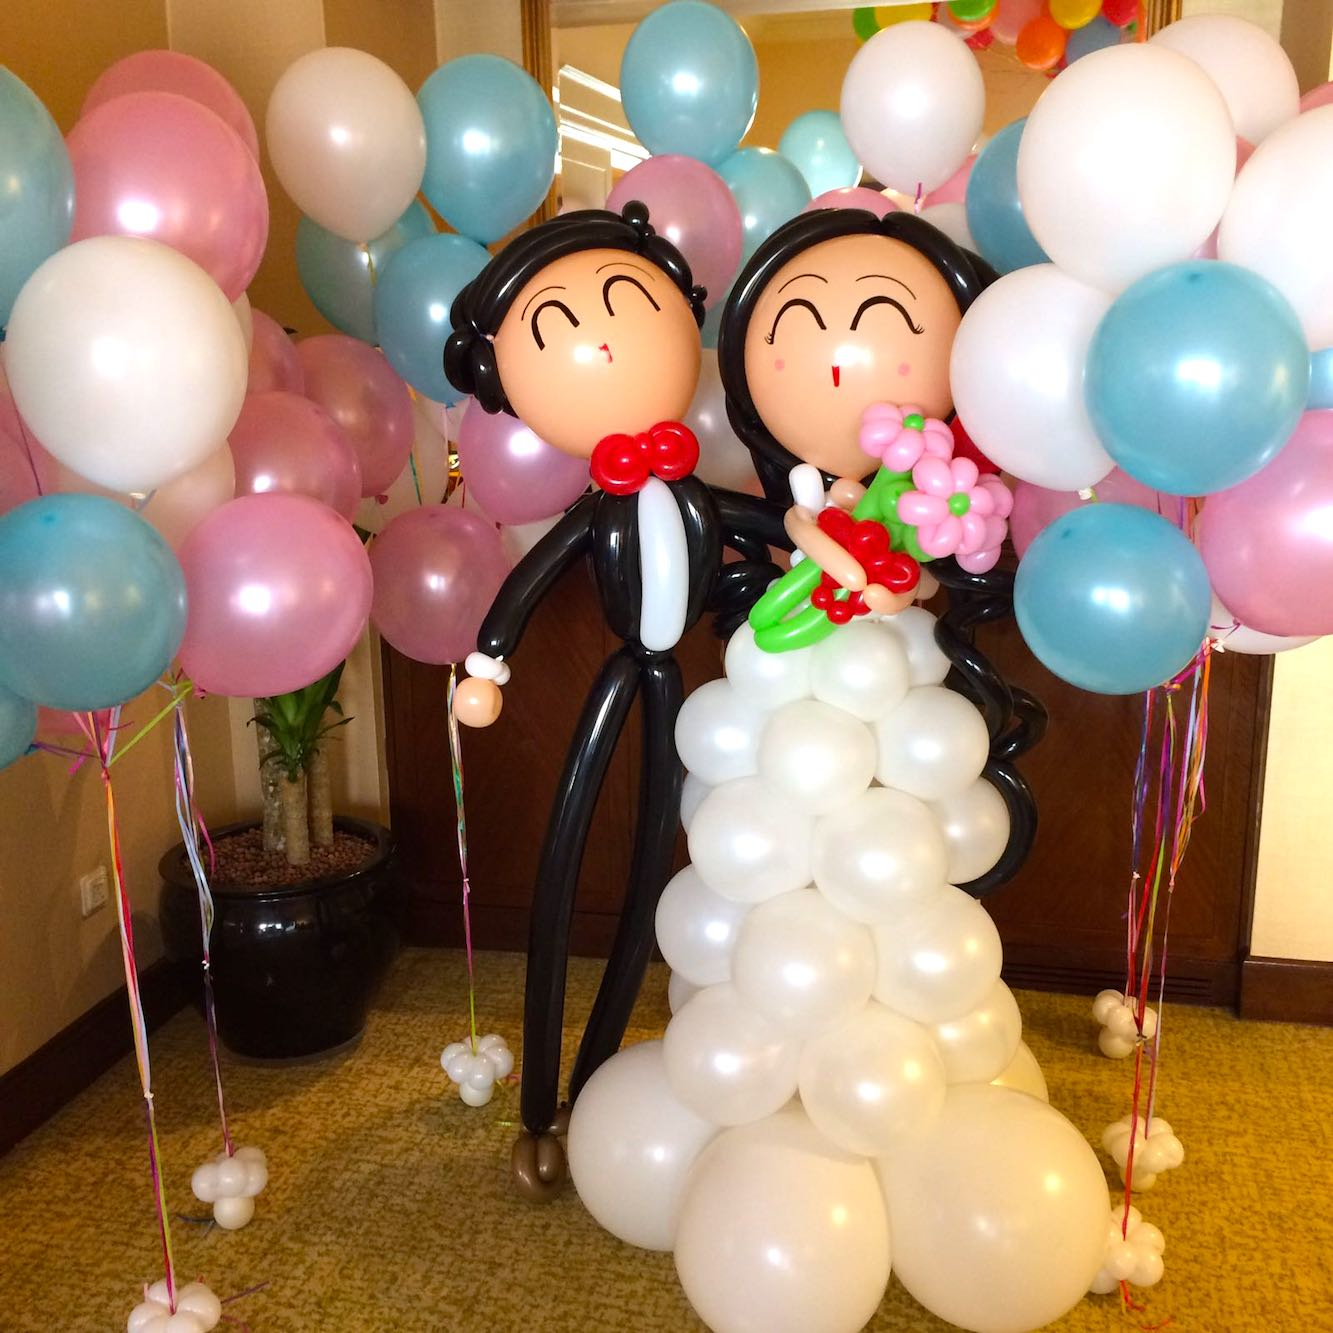 Wedding balloons singapore that balloons for Helium balloon decoration